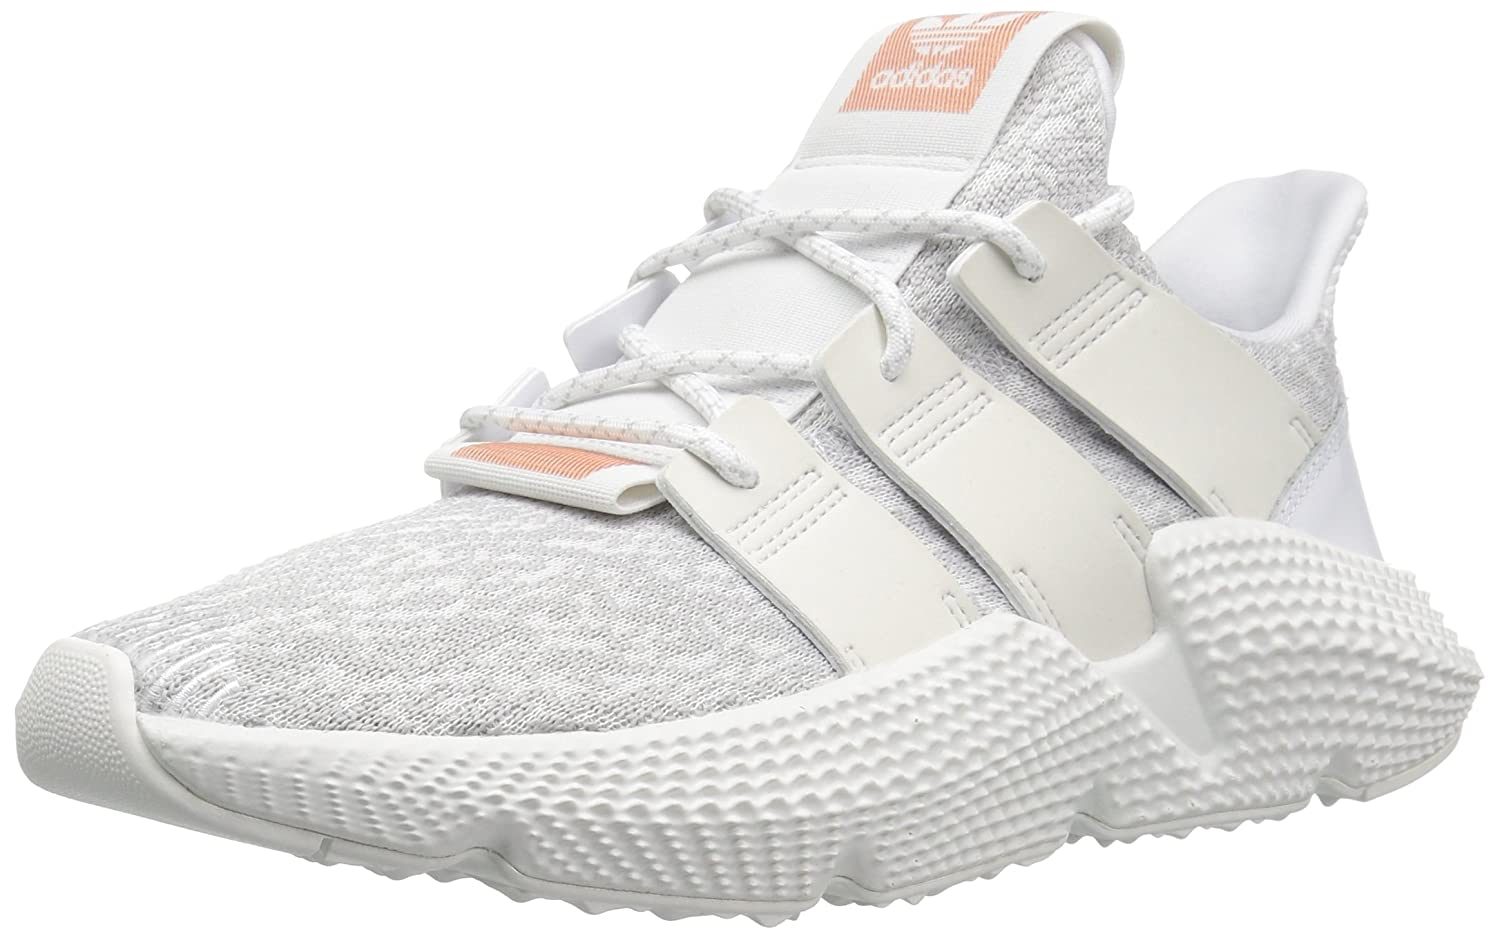 adidas Originals Women's Prophere B07B7G79V5 9.5 B(M) US|White/White/Super Collegiate